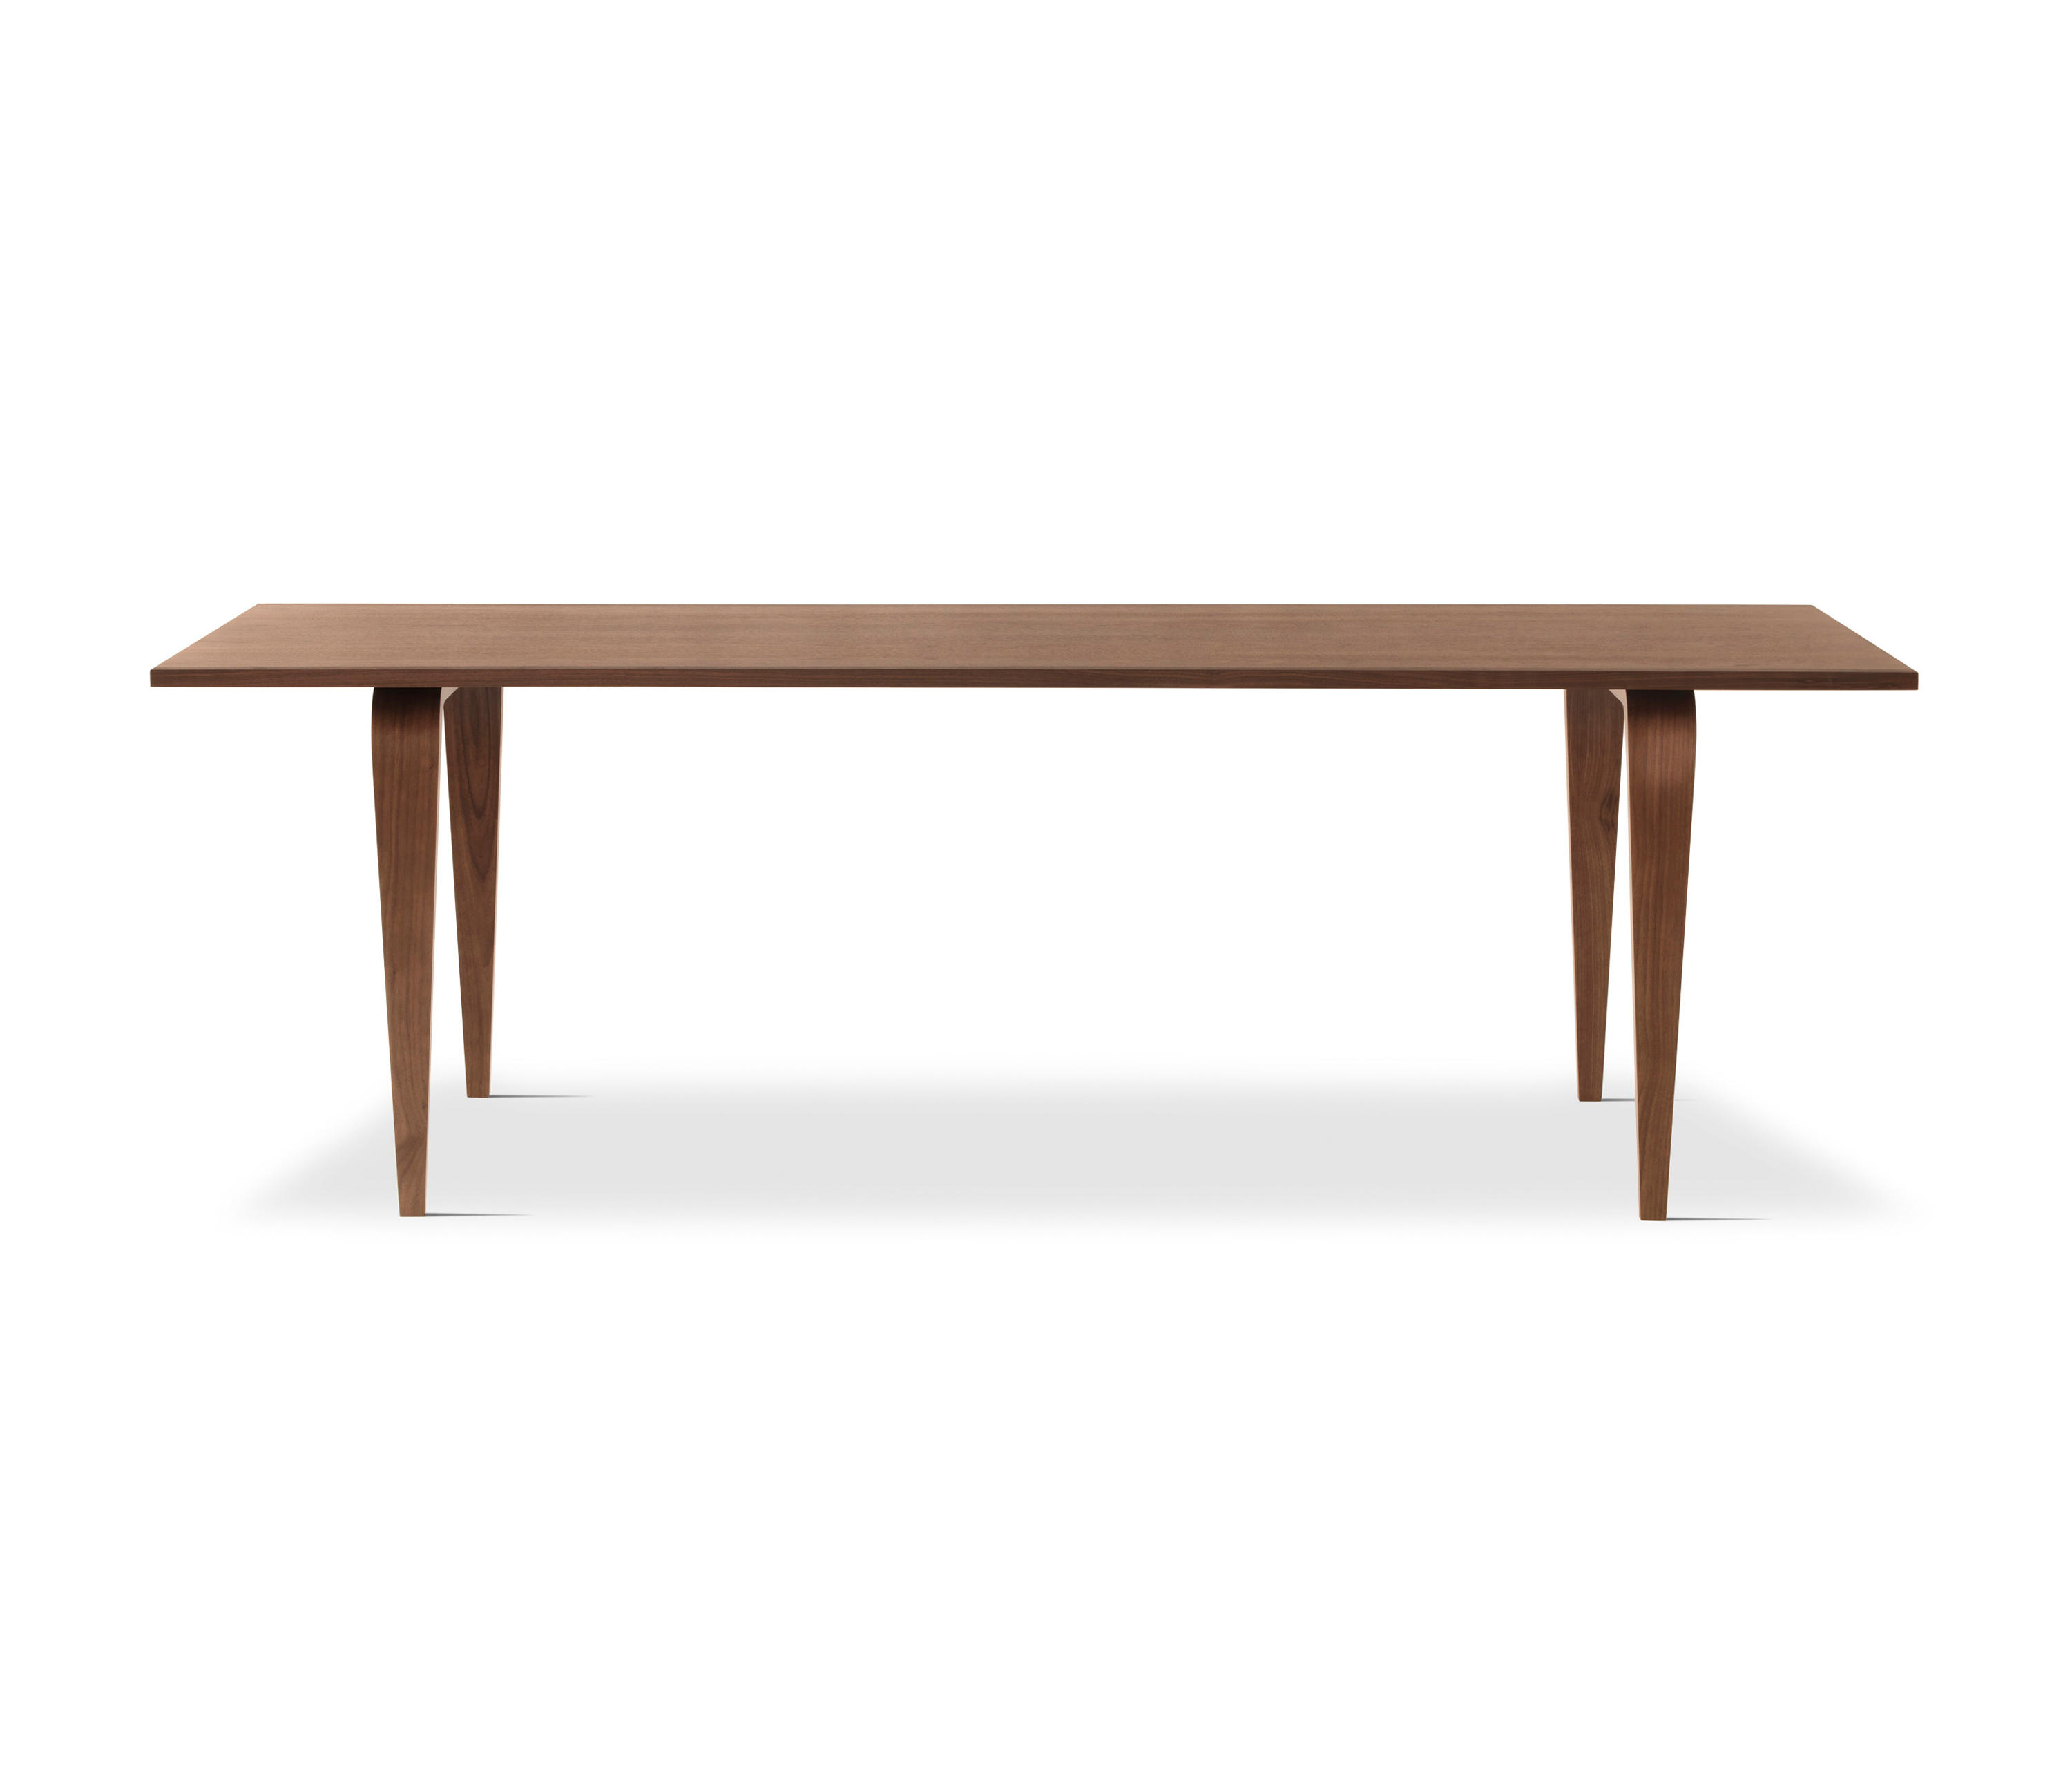 DINING TABLES - High quality designer DINING TABLES | Architonic